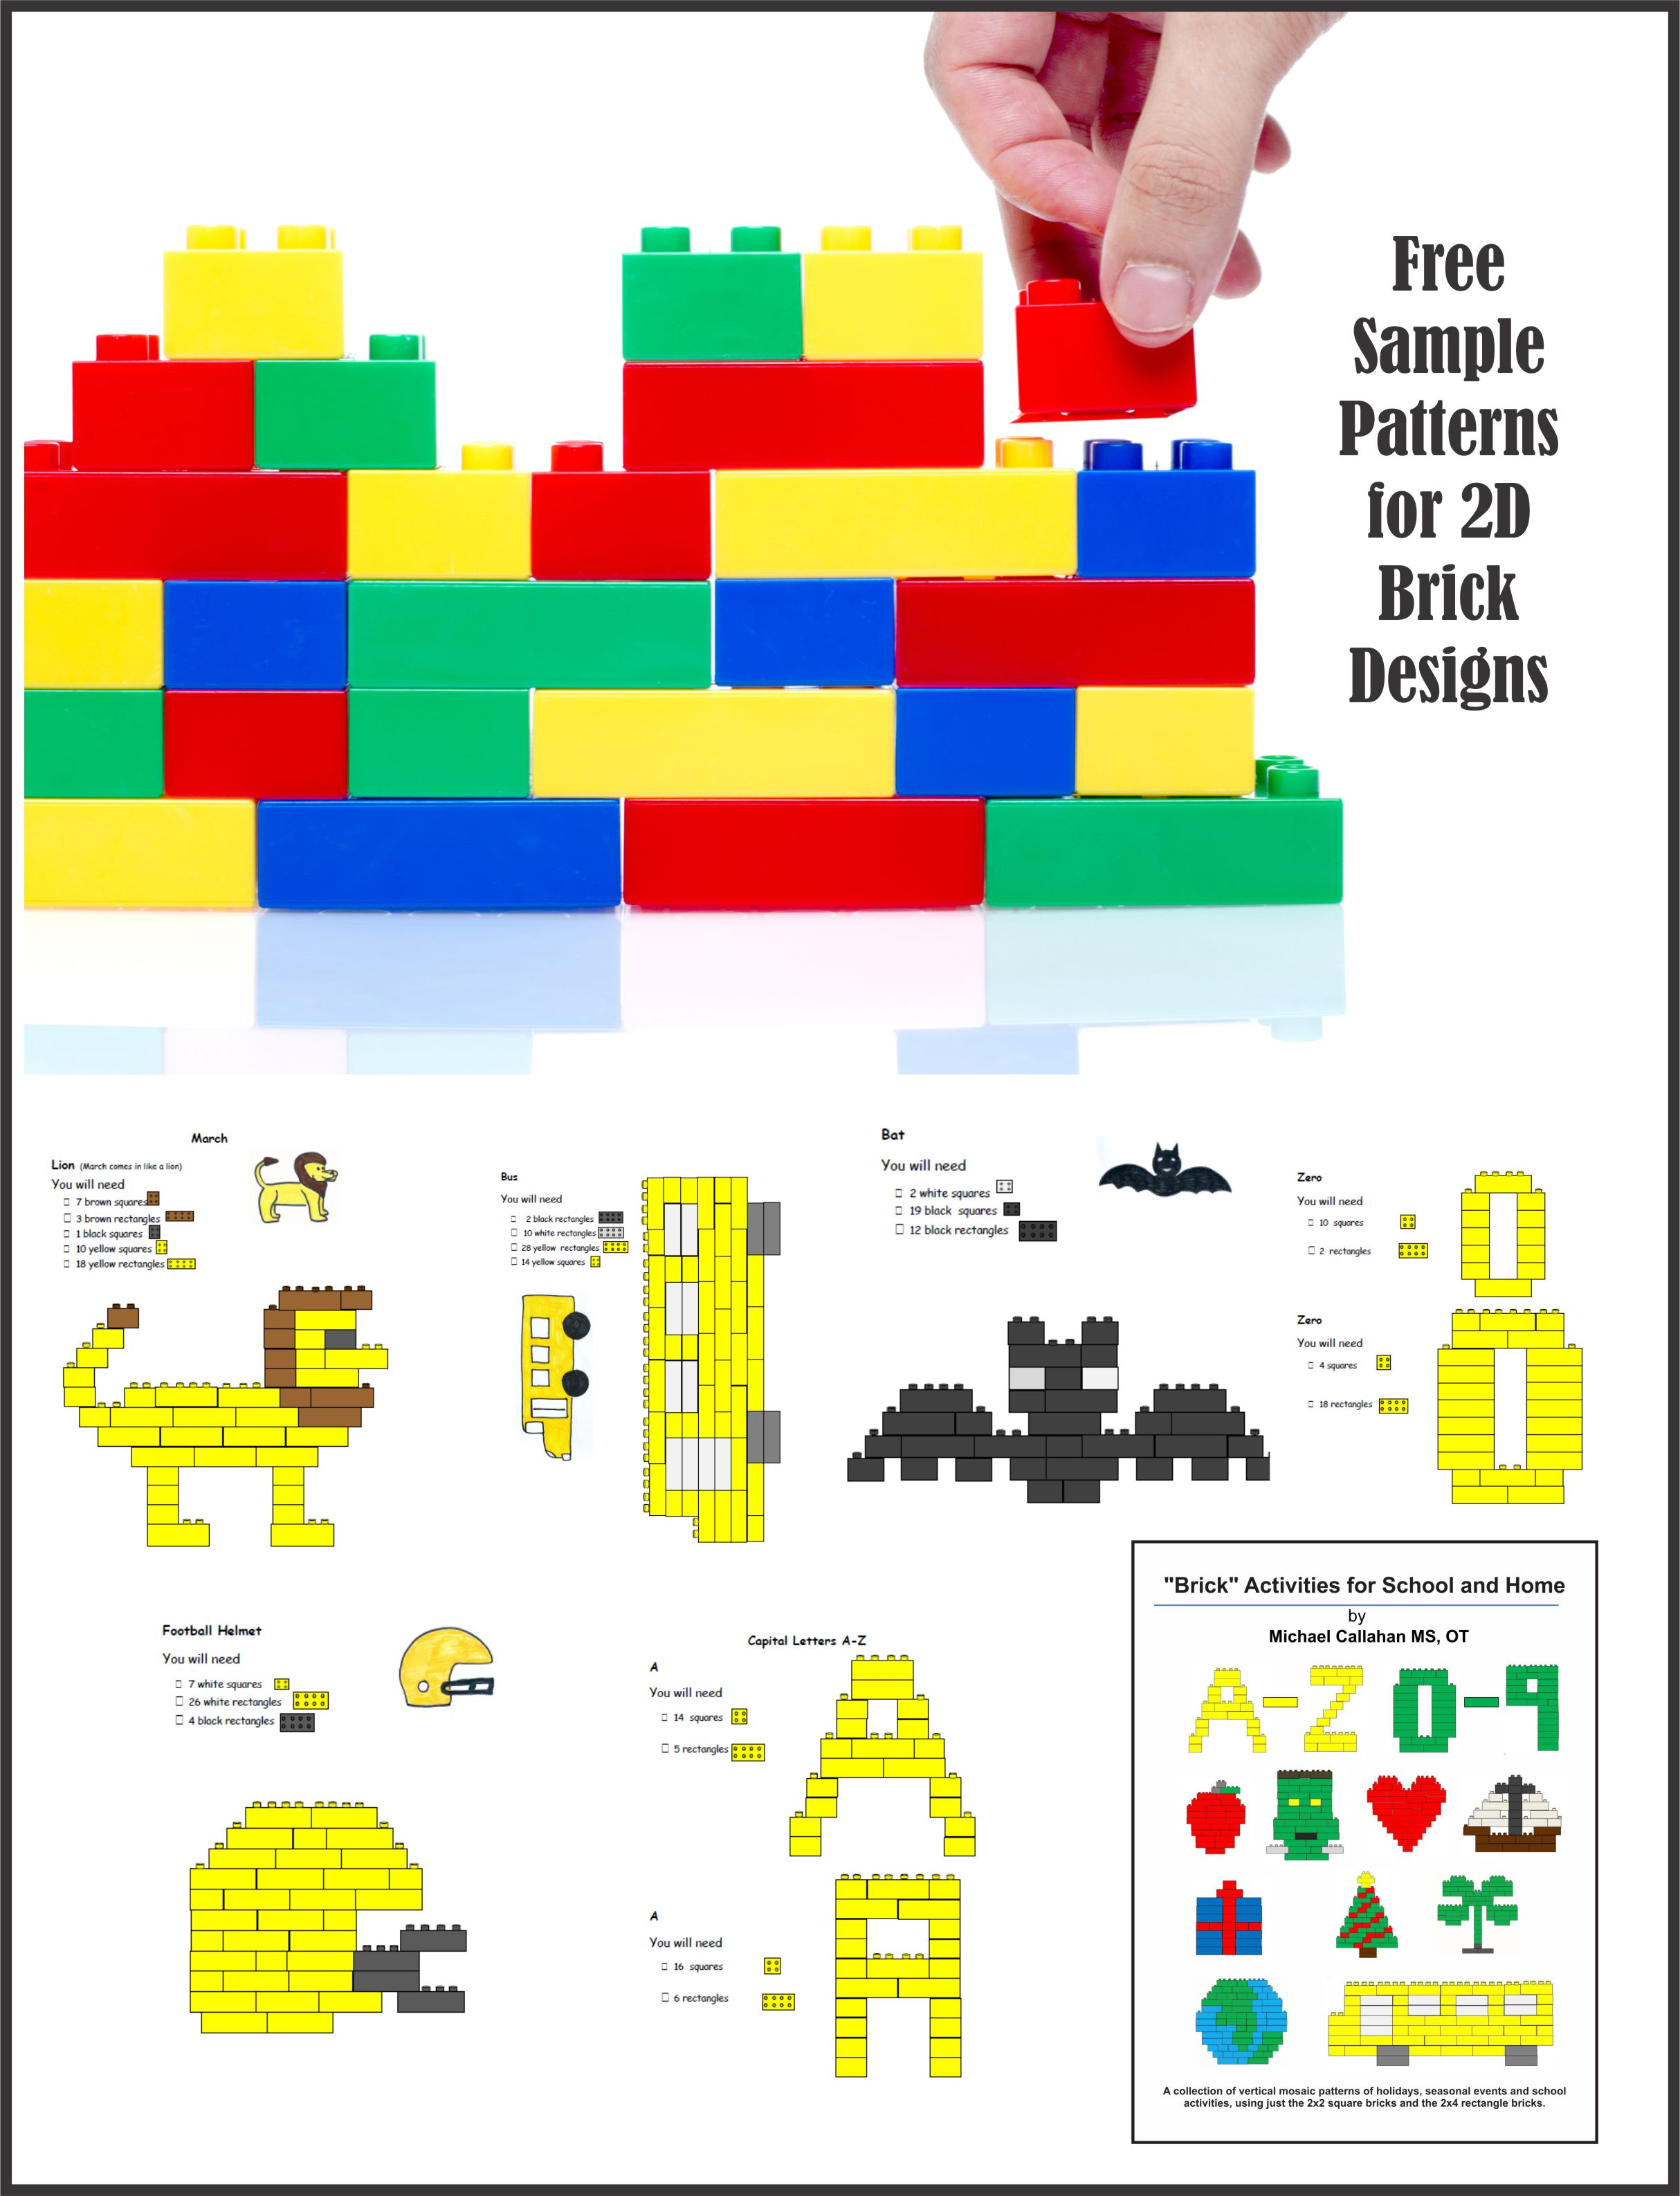 Brick Design Activity Pages For School And Home